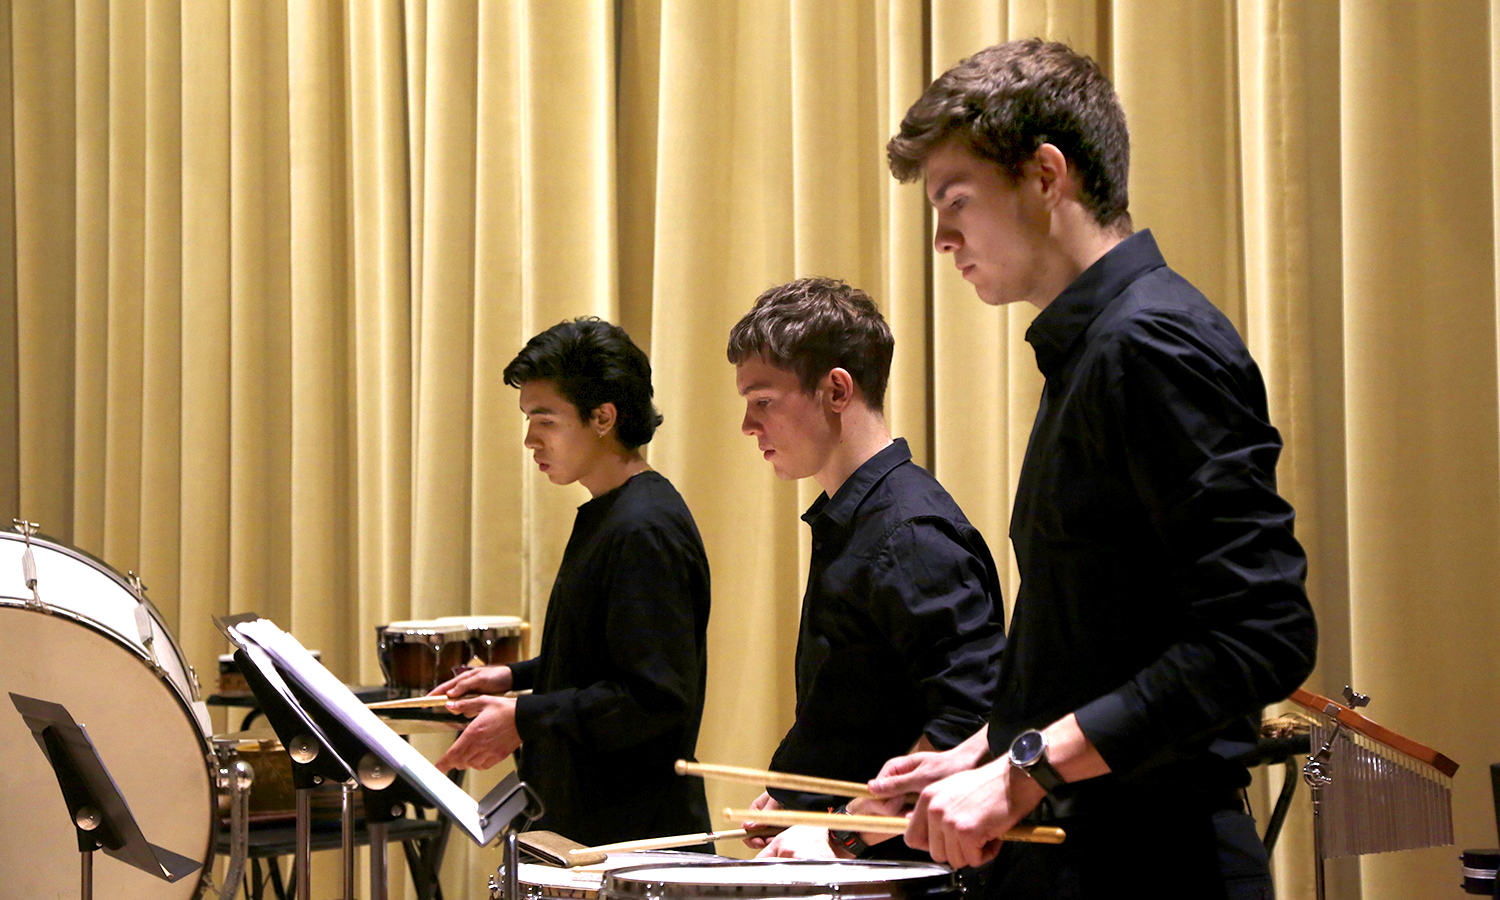 Felipe Pantle, X, and X (L to R) during Percussion Ensemble.